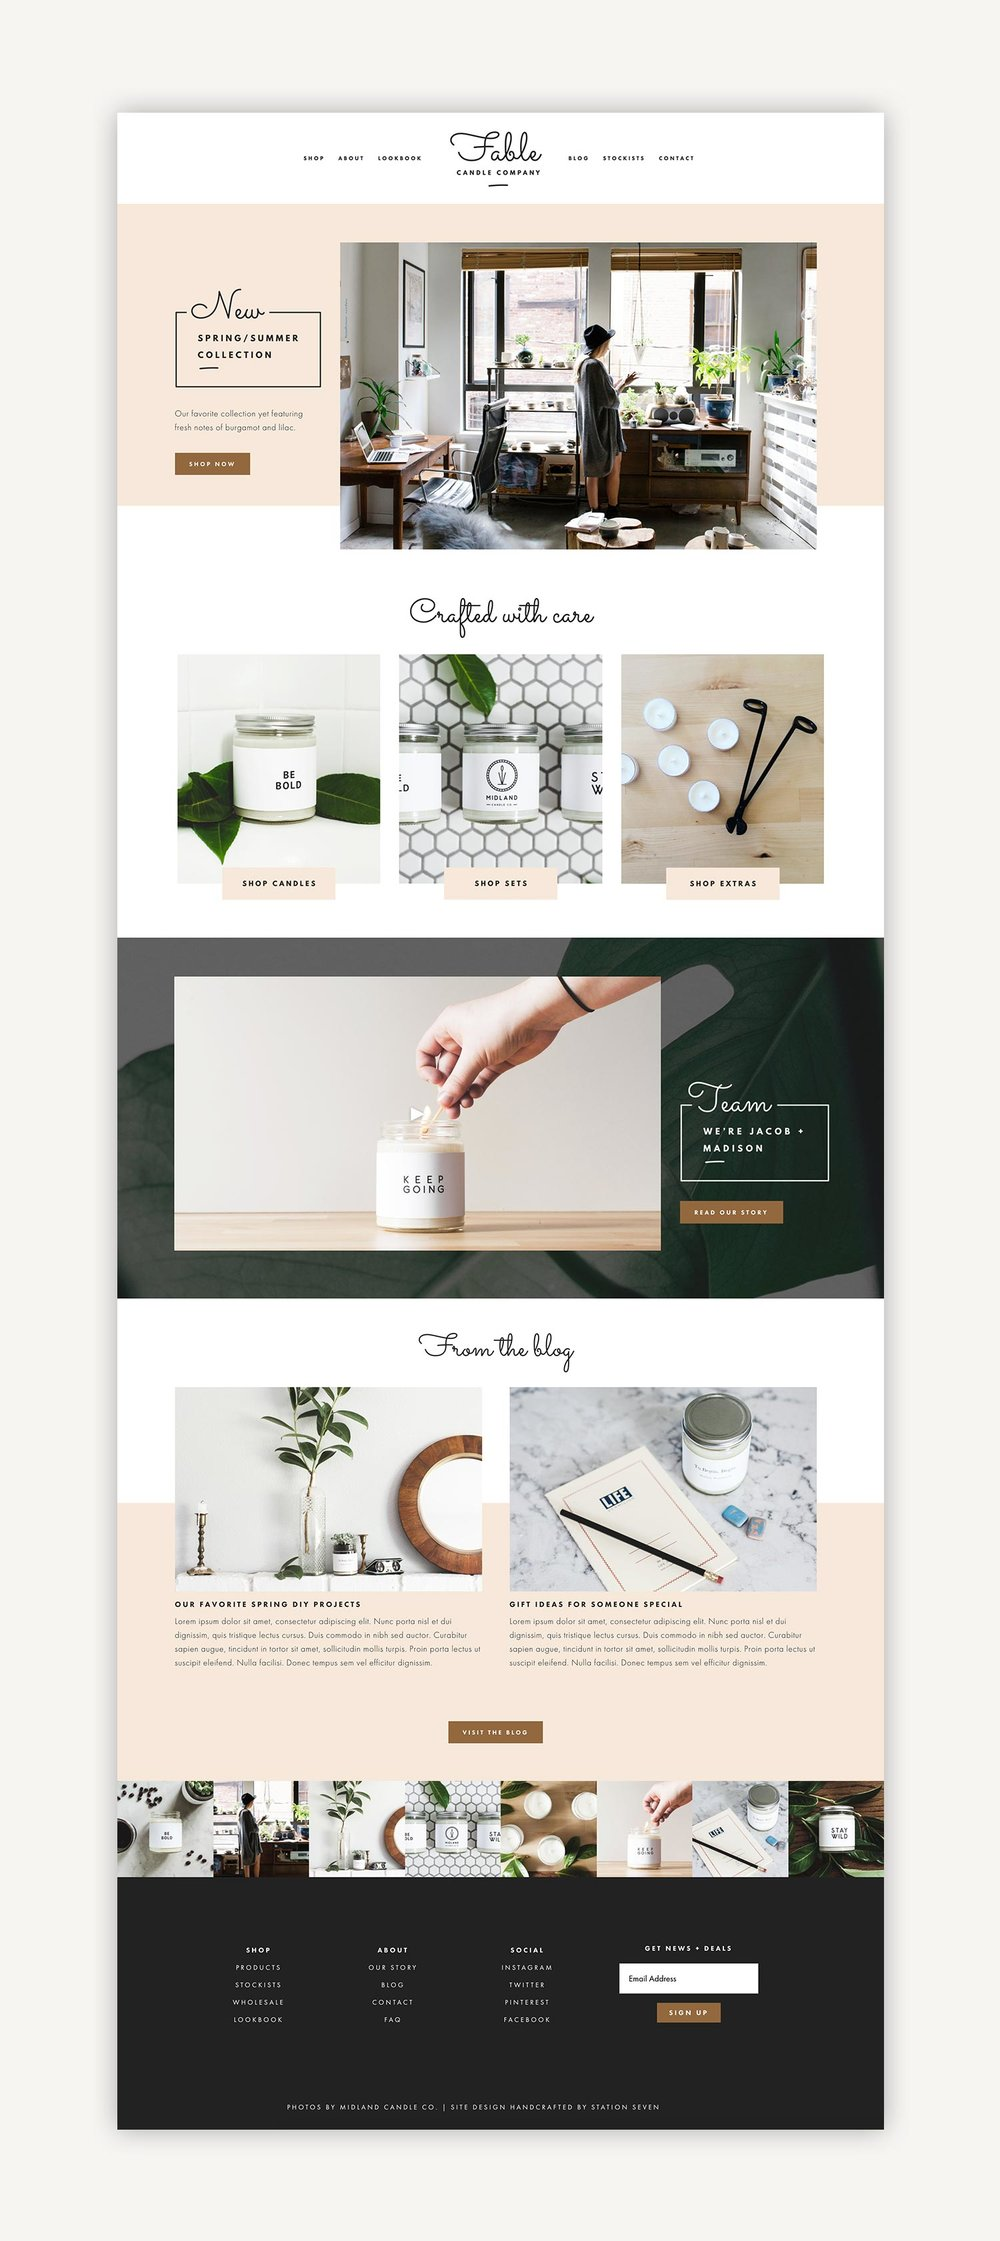 fable squarespace kit station seven squarespace templates wordpress themes and free resources for creative entrepreneurs